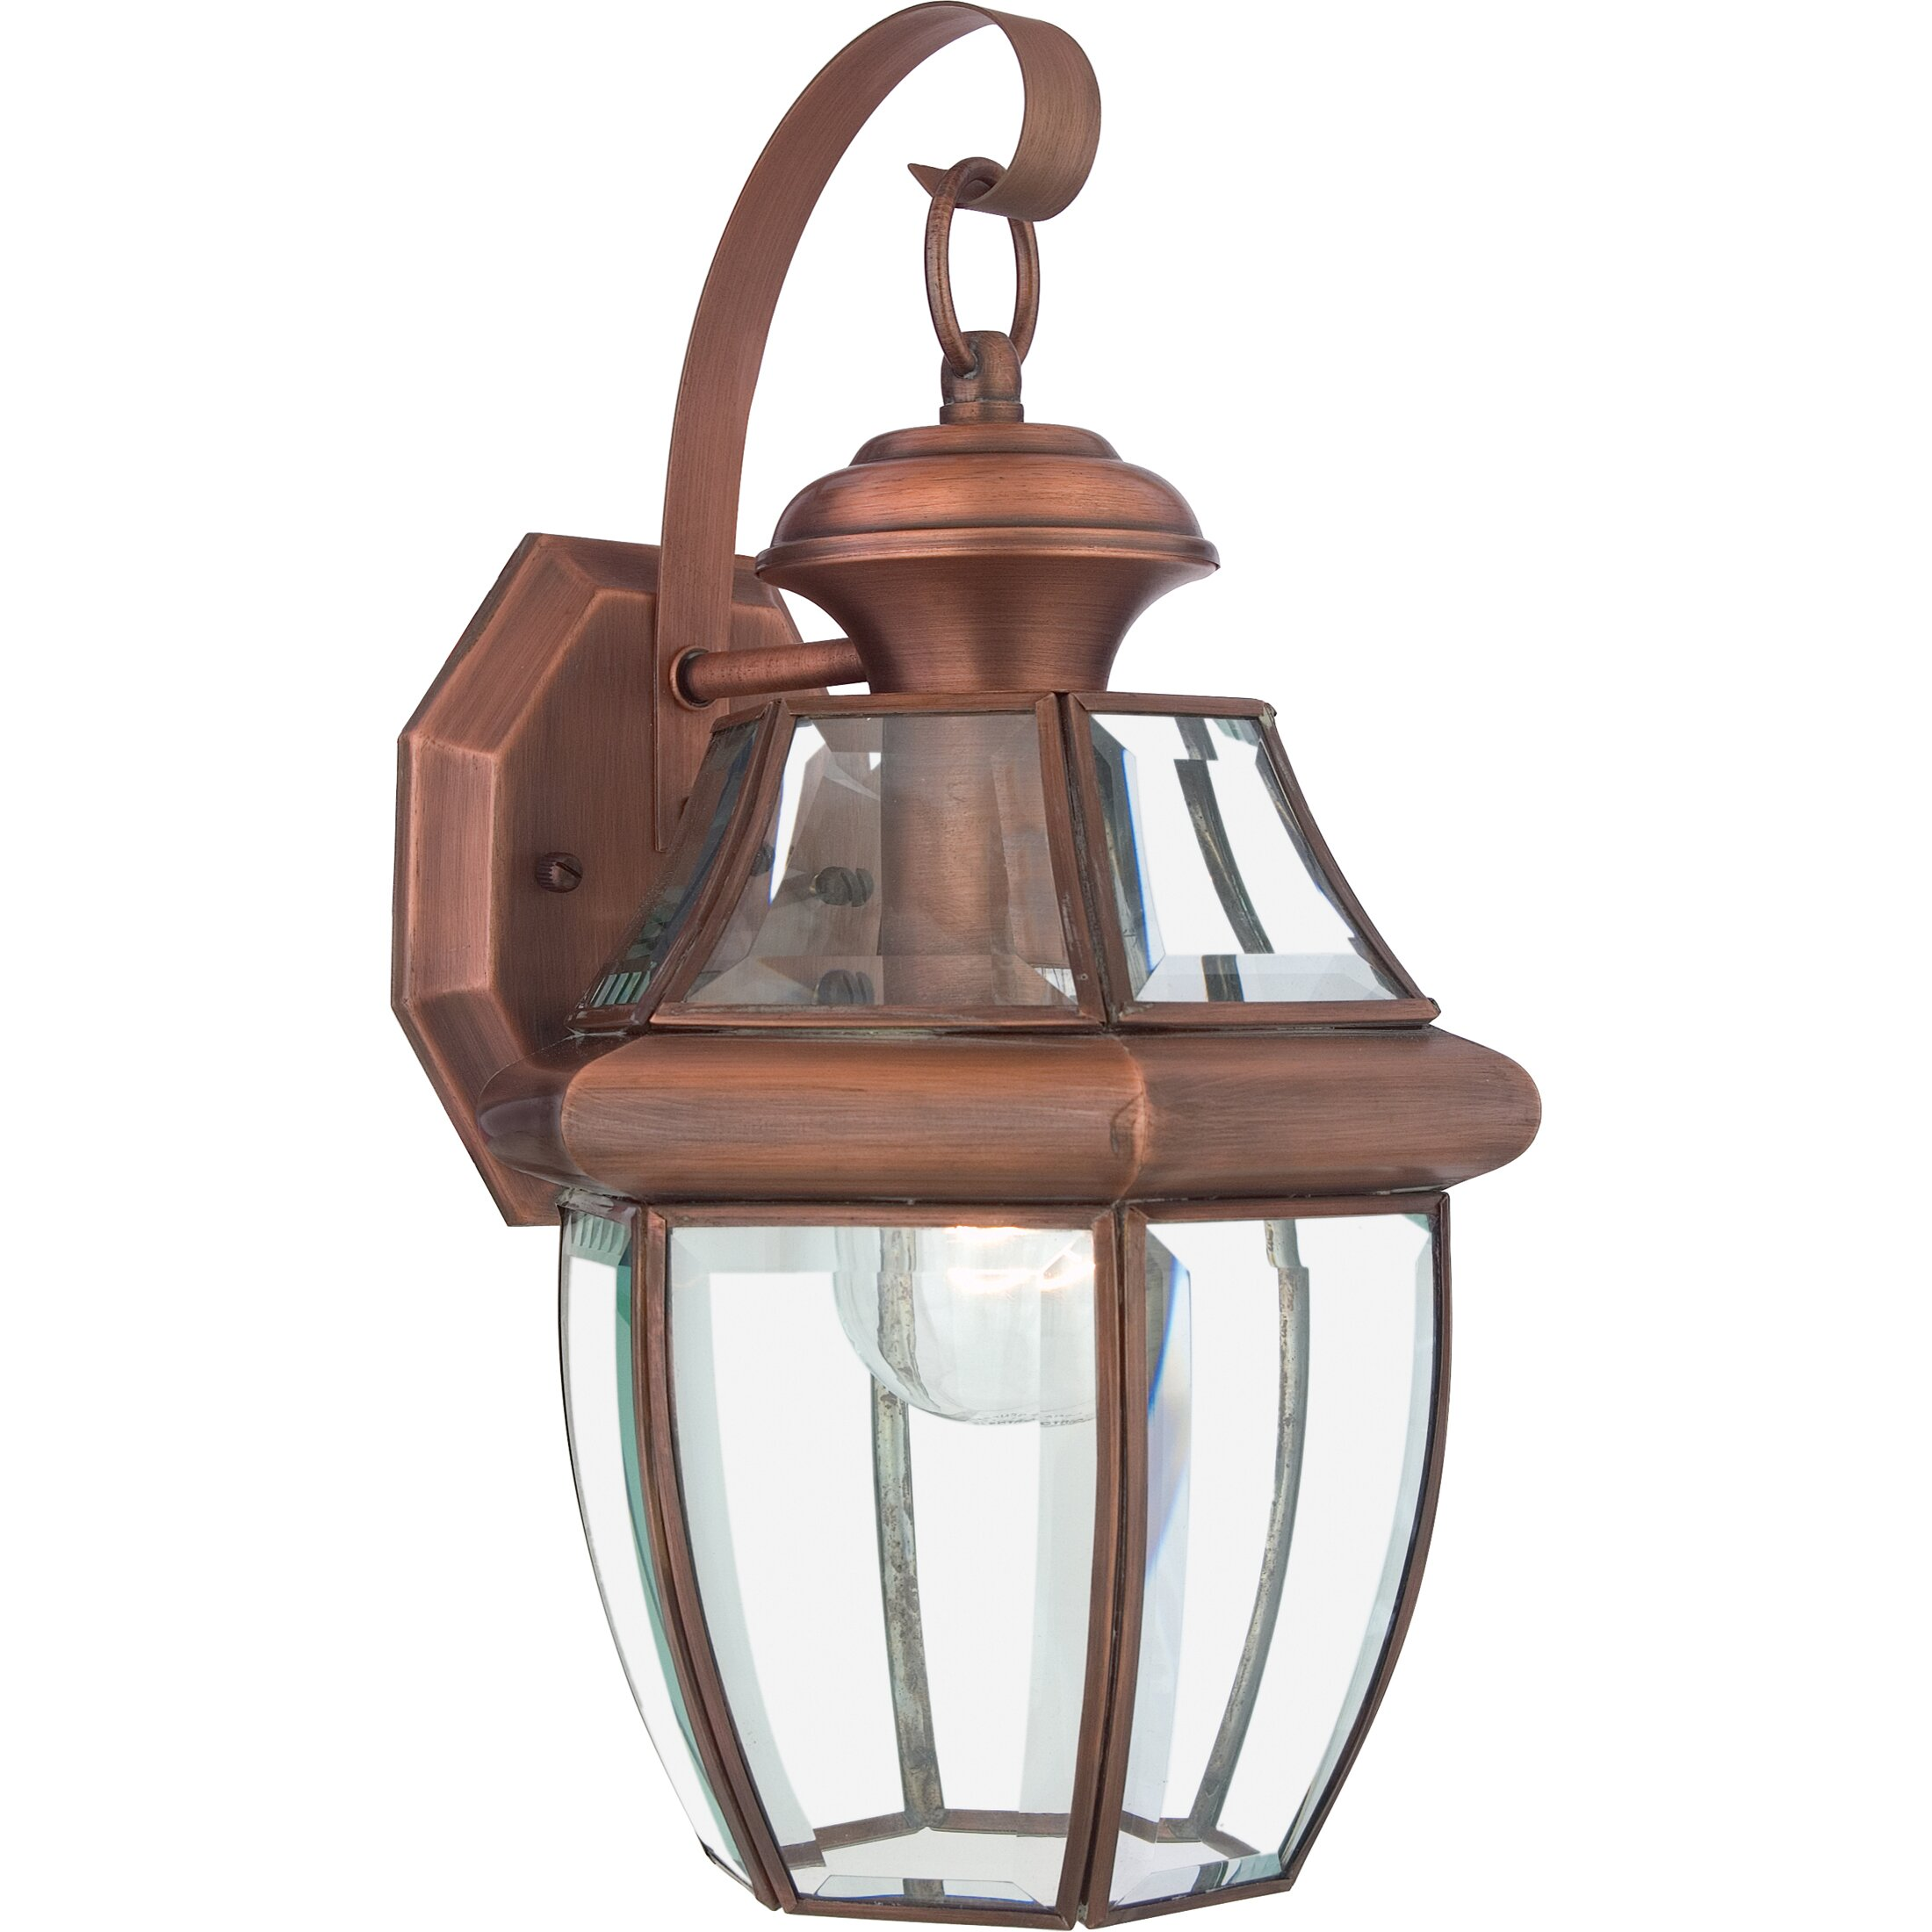 Wayfair External Wall Lights : Darby Home Co Saddler 1 Light Outdoor Wall Lantern & Reviews Wayfair